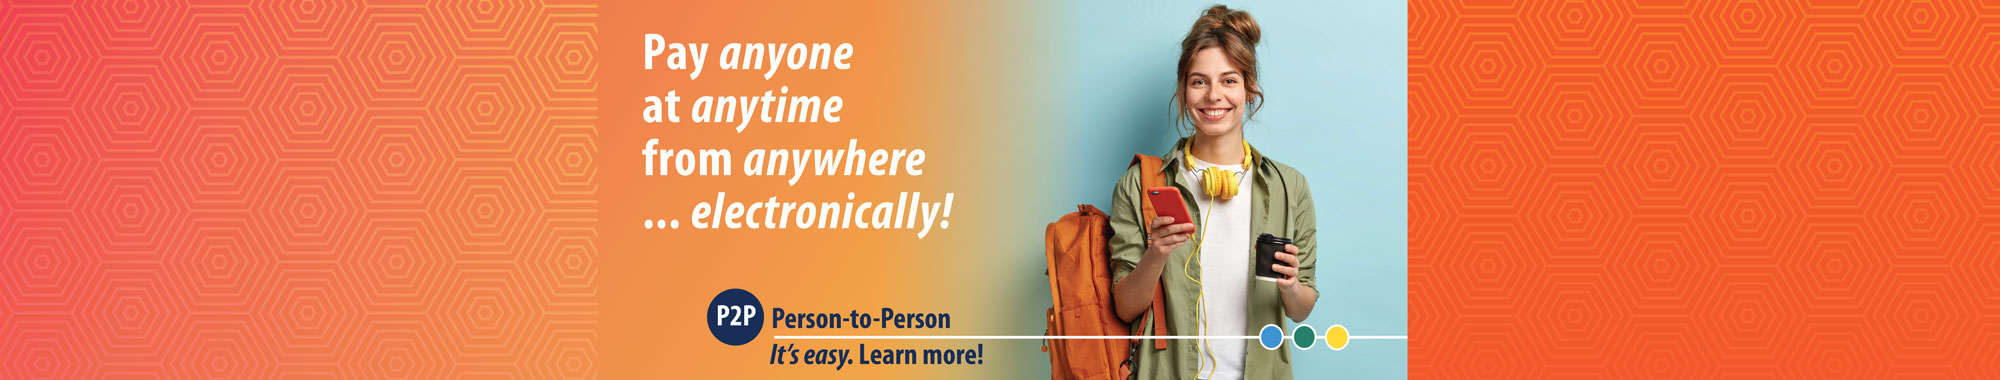 P2P Person-to-Person. Learn more!